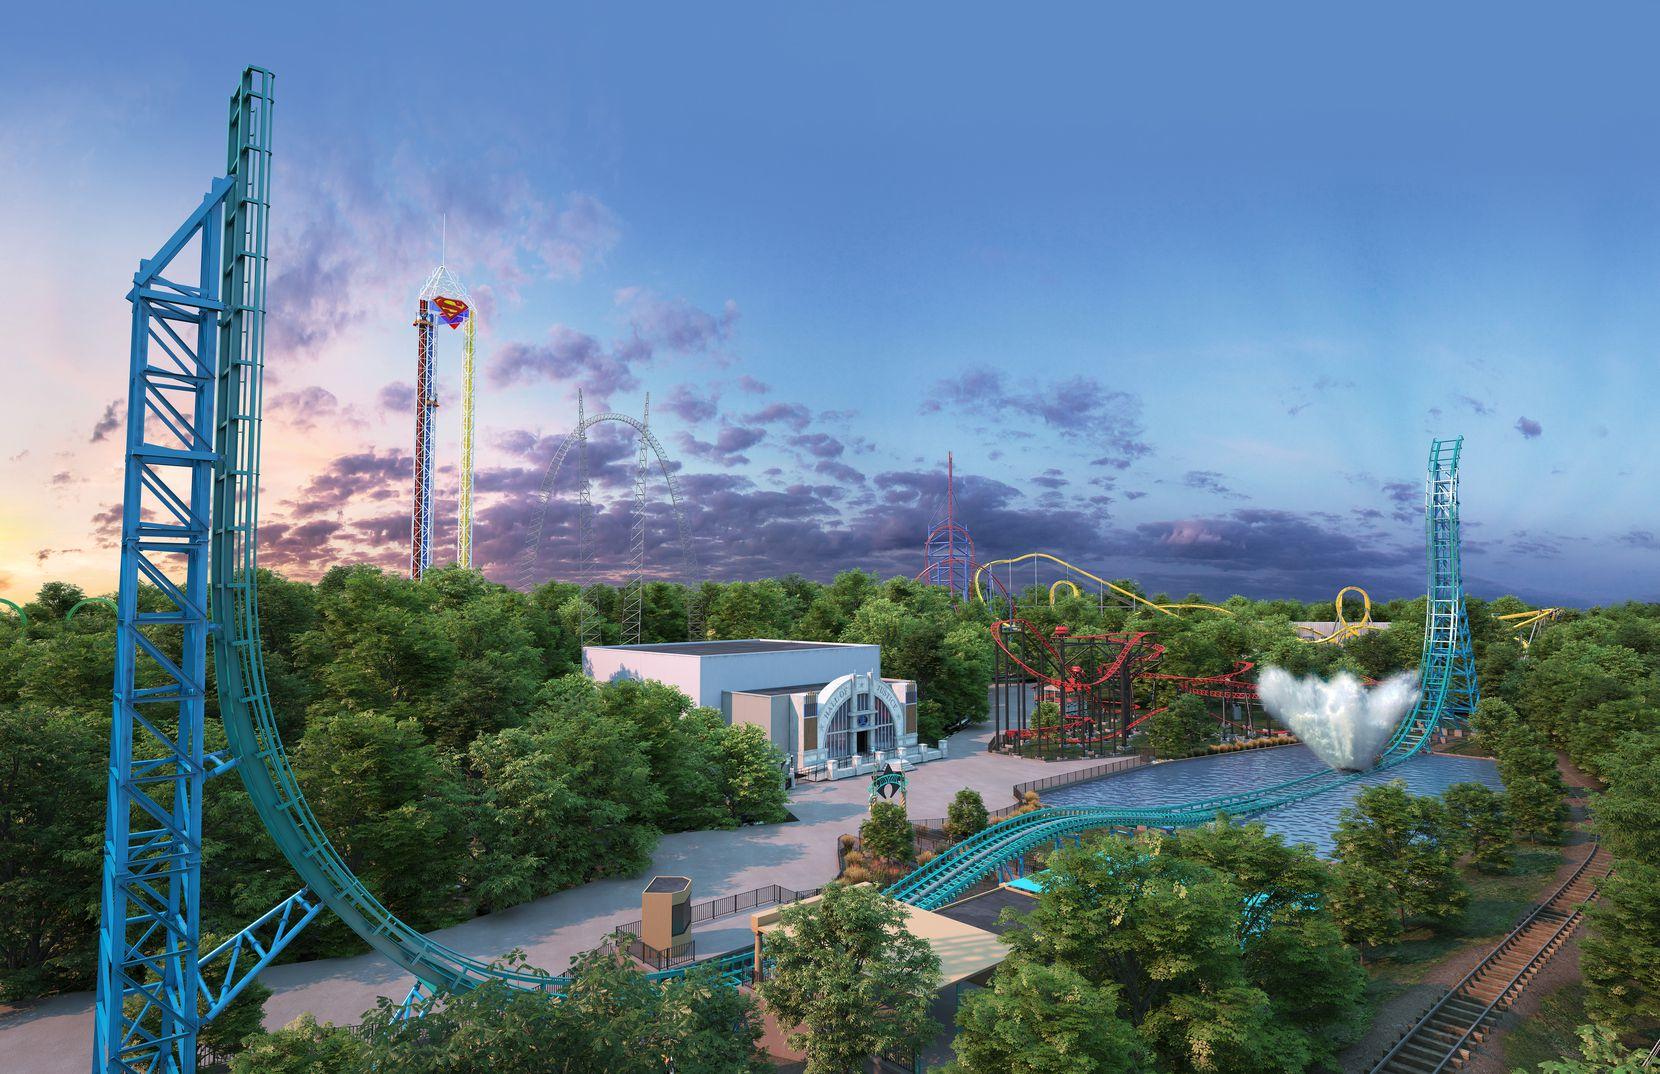 Aquaman: Power Wave is expected to open in the summer of 2022 at Six Flags Over Texas in Arlington.